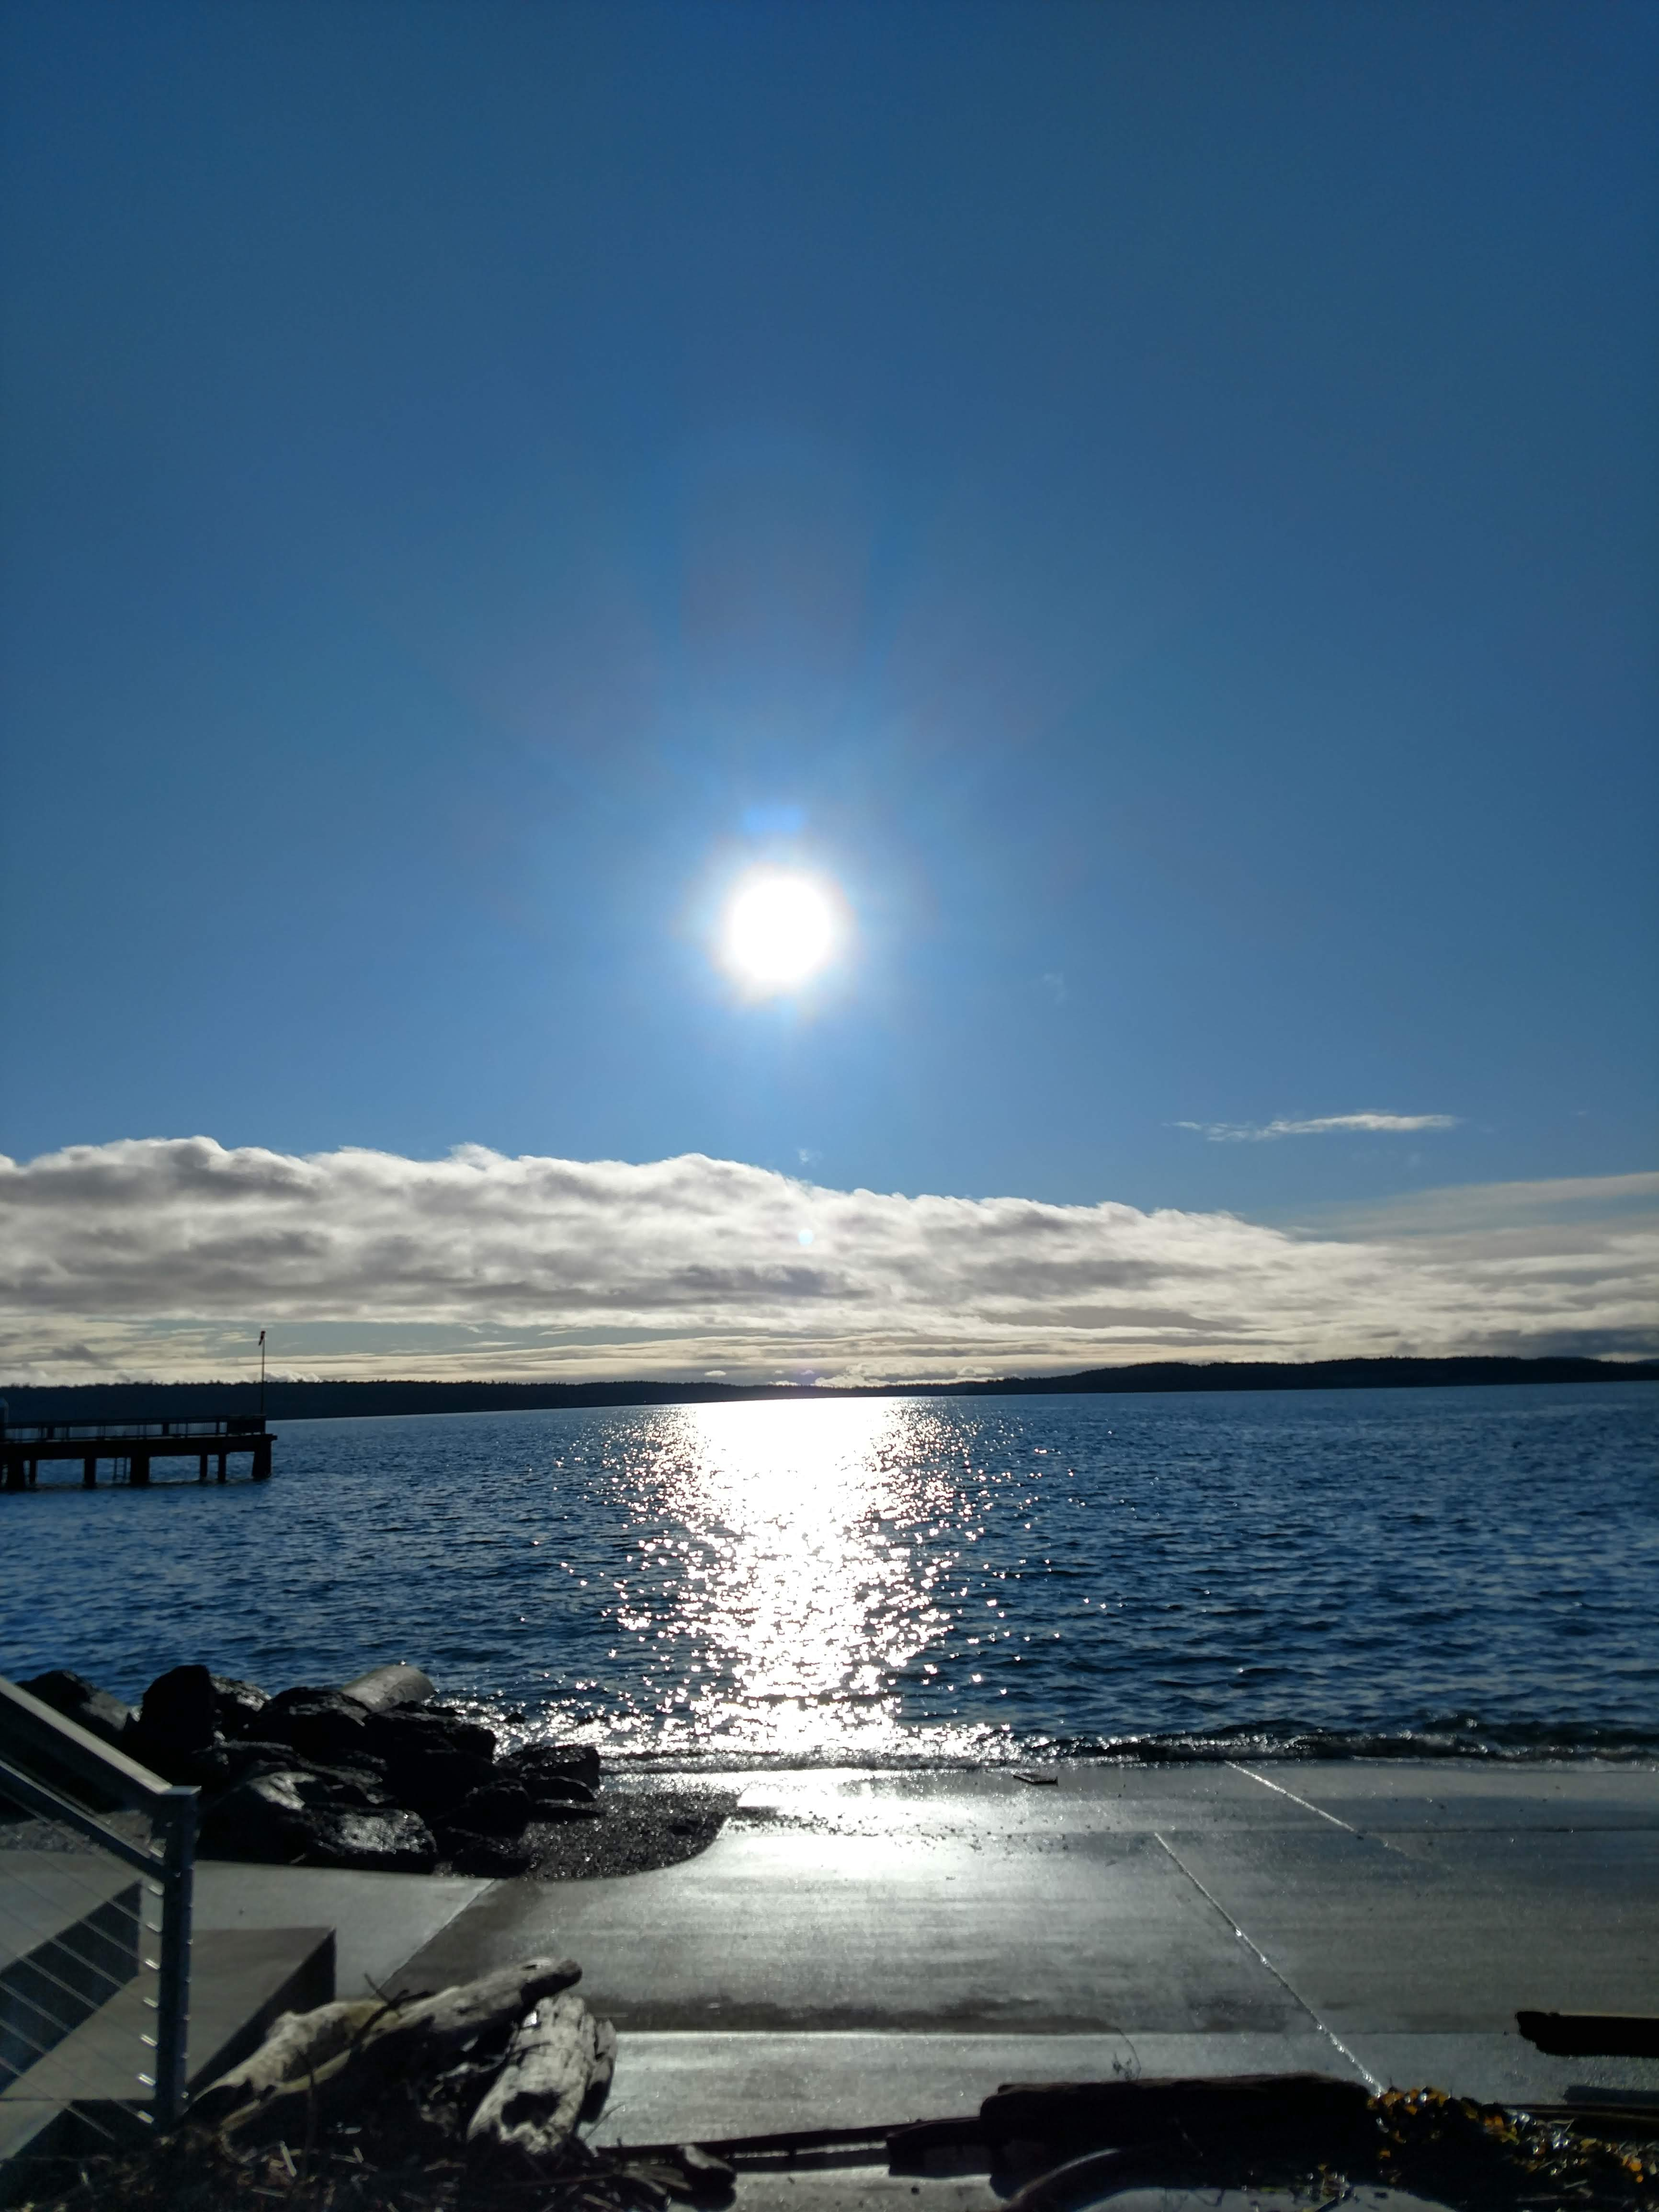 Port Townsend Bay, taken from Port Townsend, WA (photo by me)